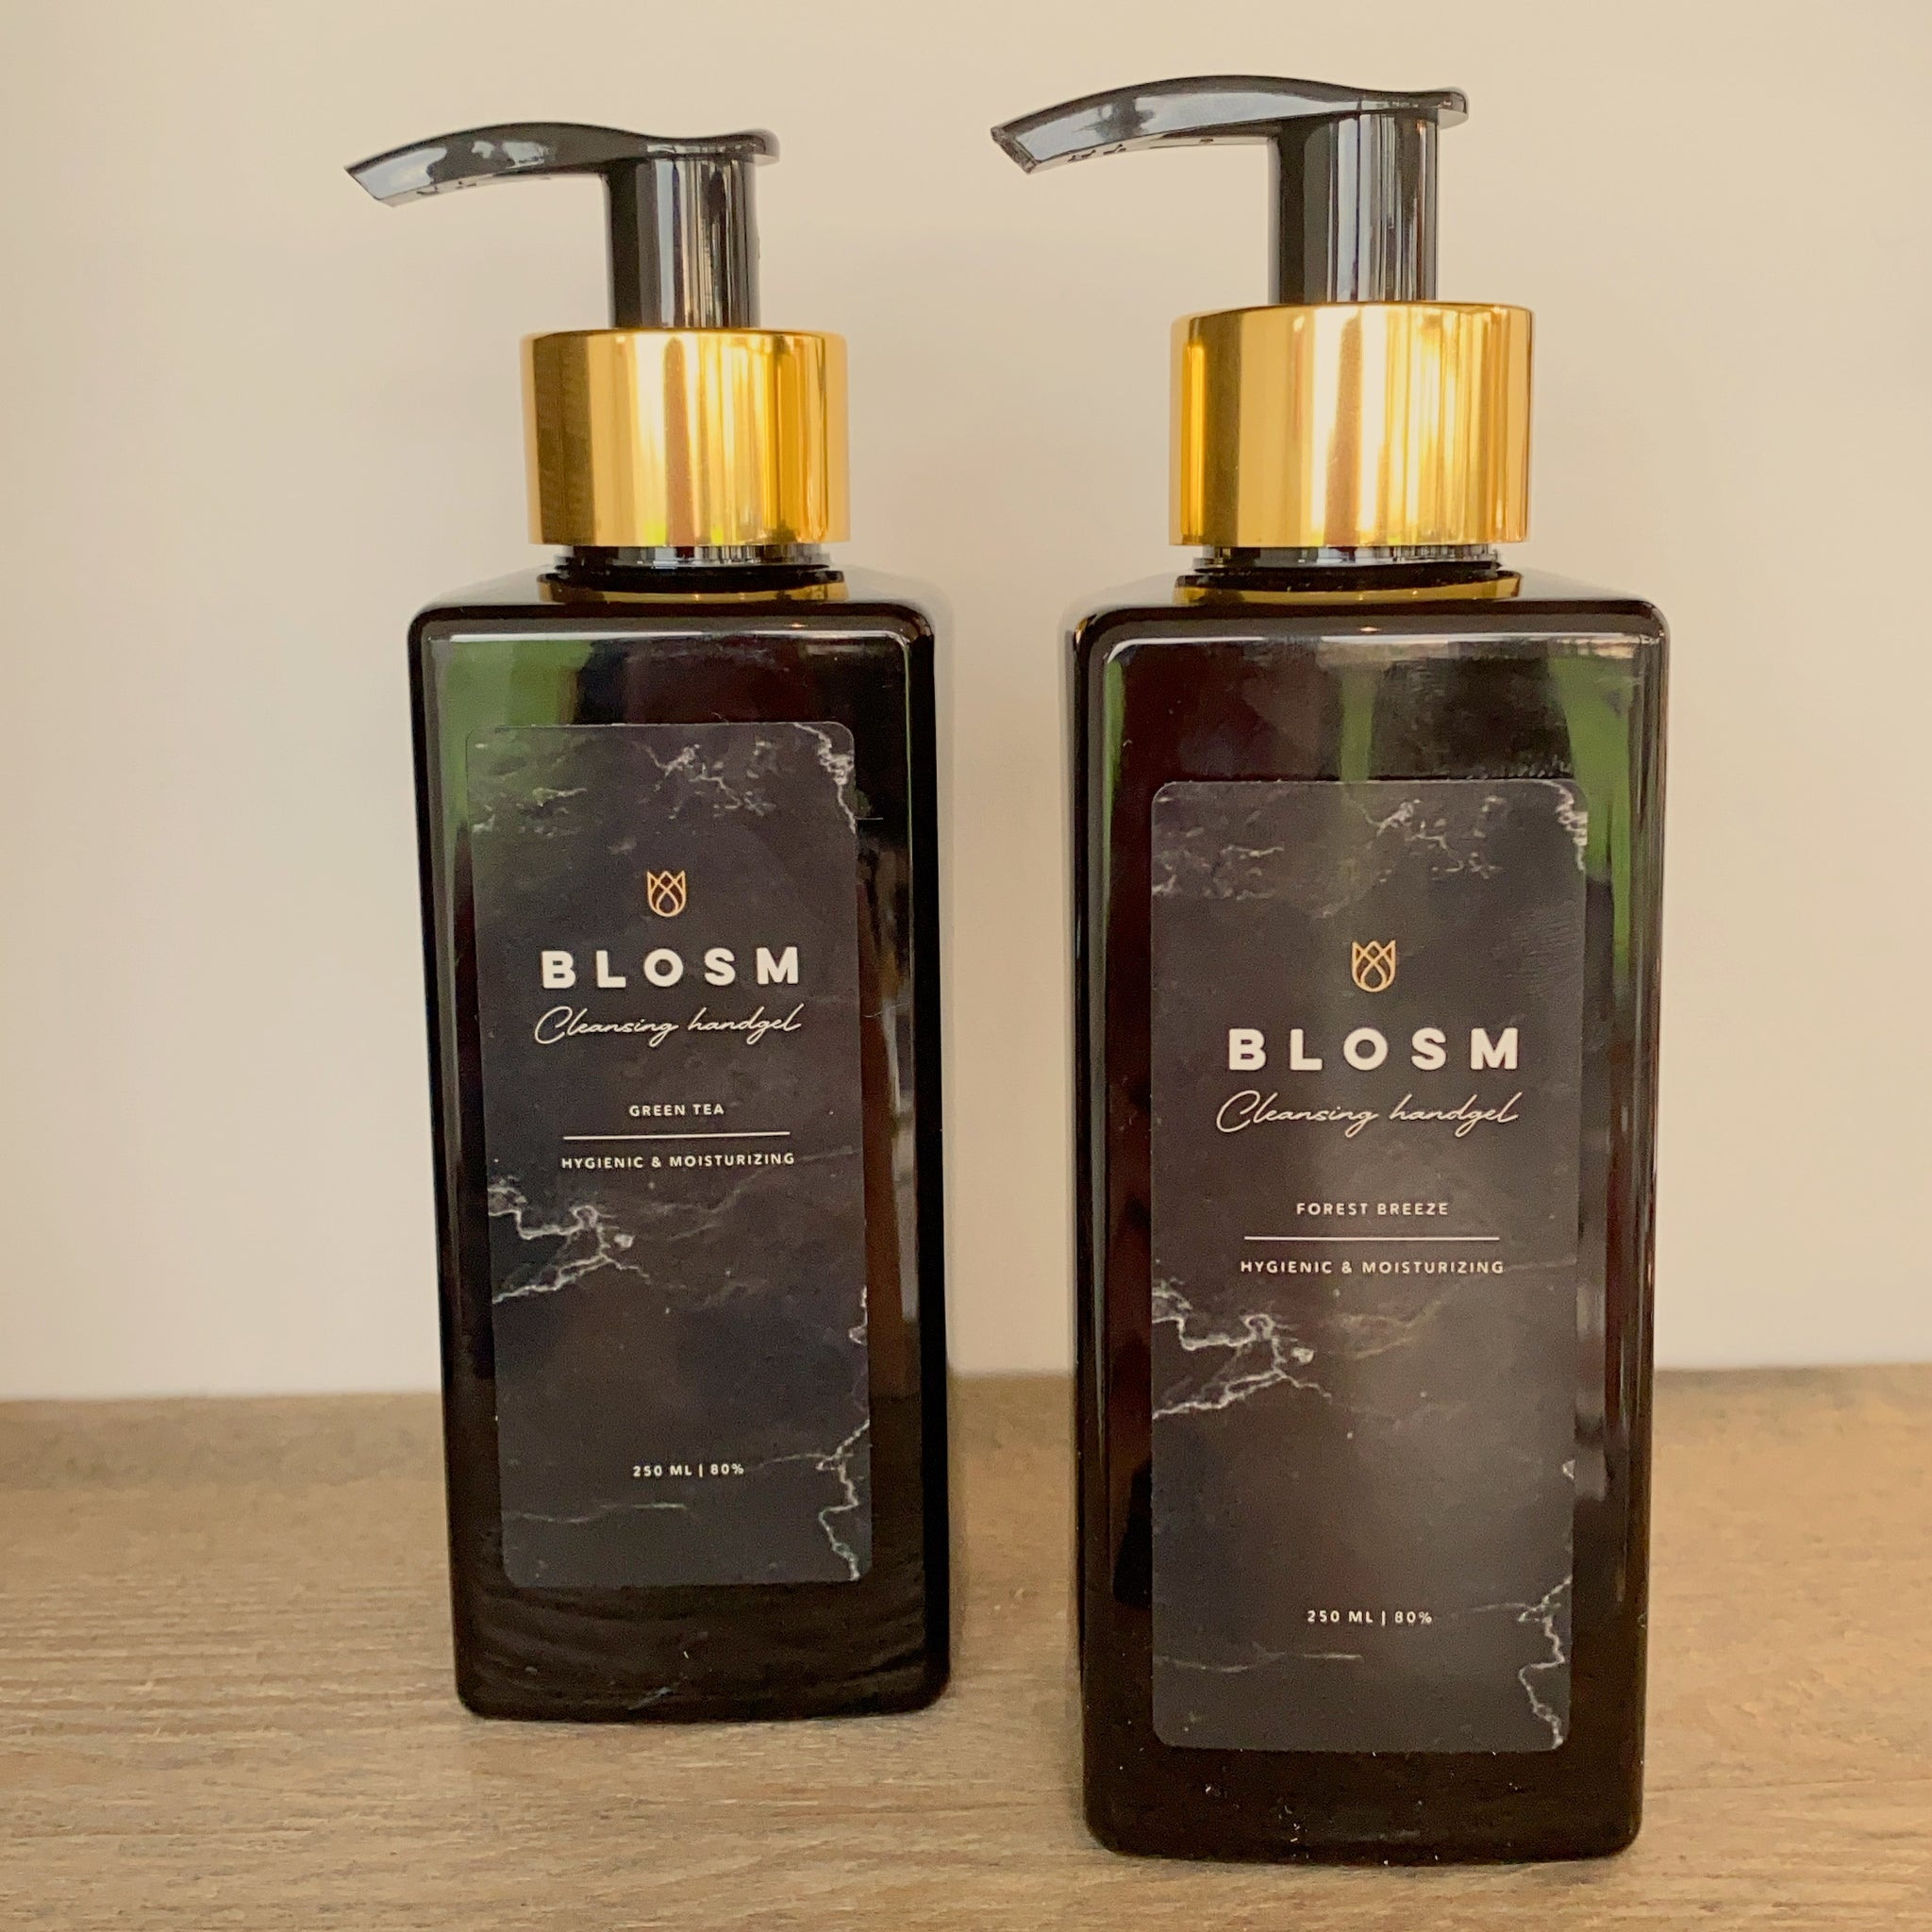 BLOSM Cleansing handgel - 250ml